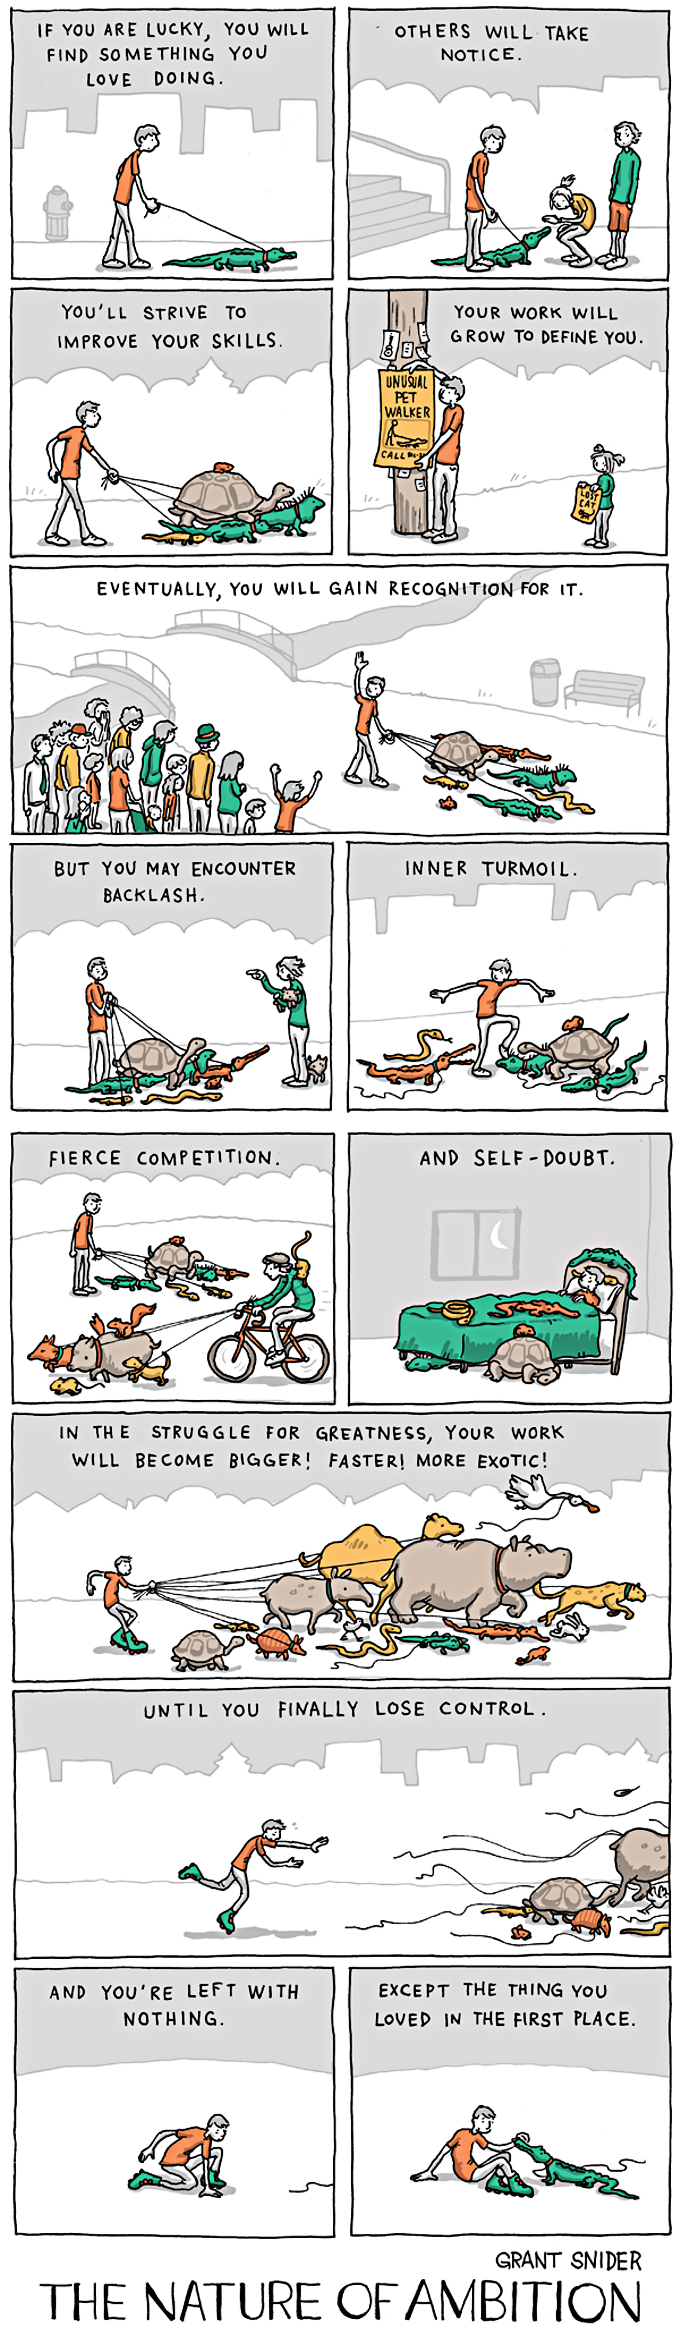 The nature of ambition